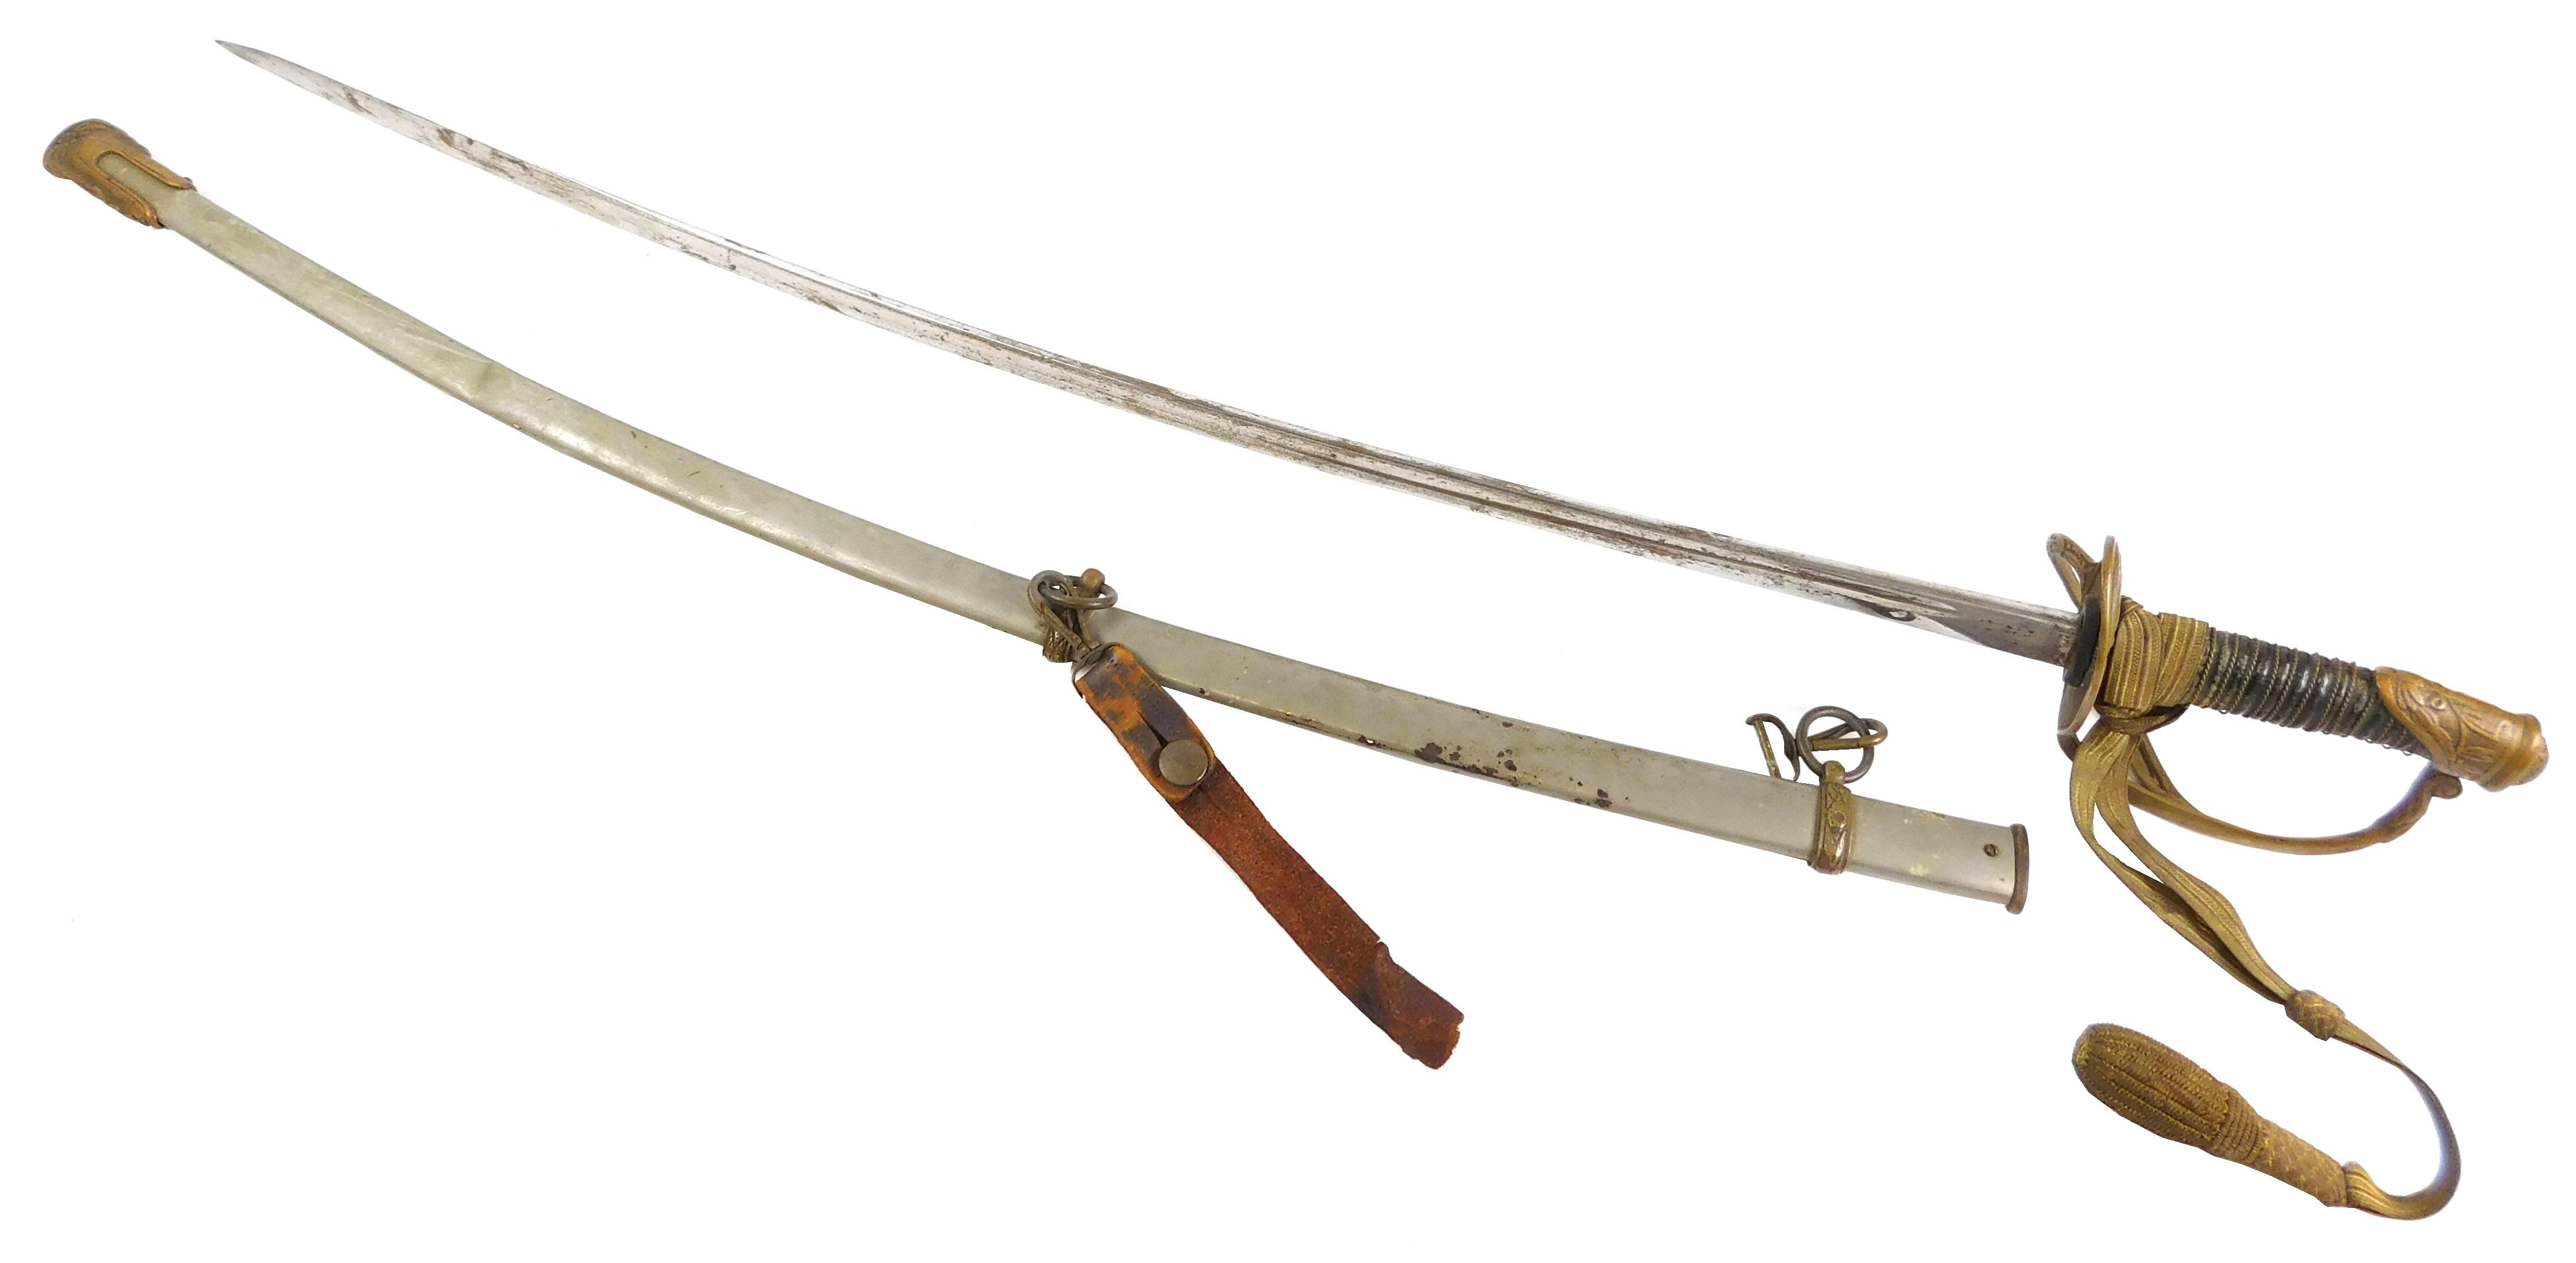 WEAPON: 1870 U.S. military officers sword, imported blade with sword knot, wear consistent with age and use, finish loss on grip, so...